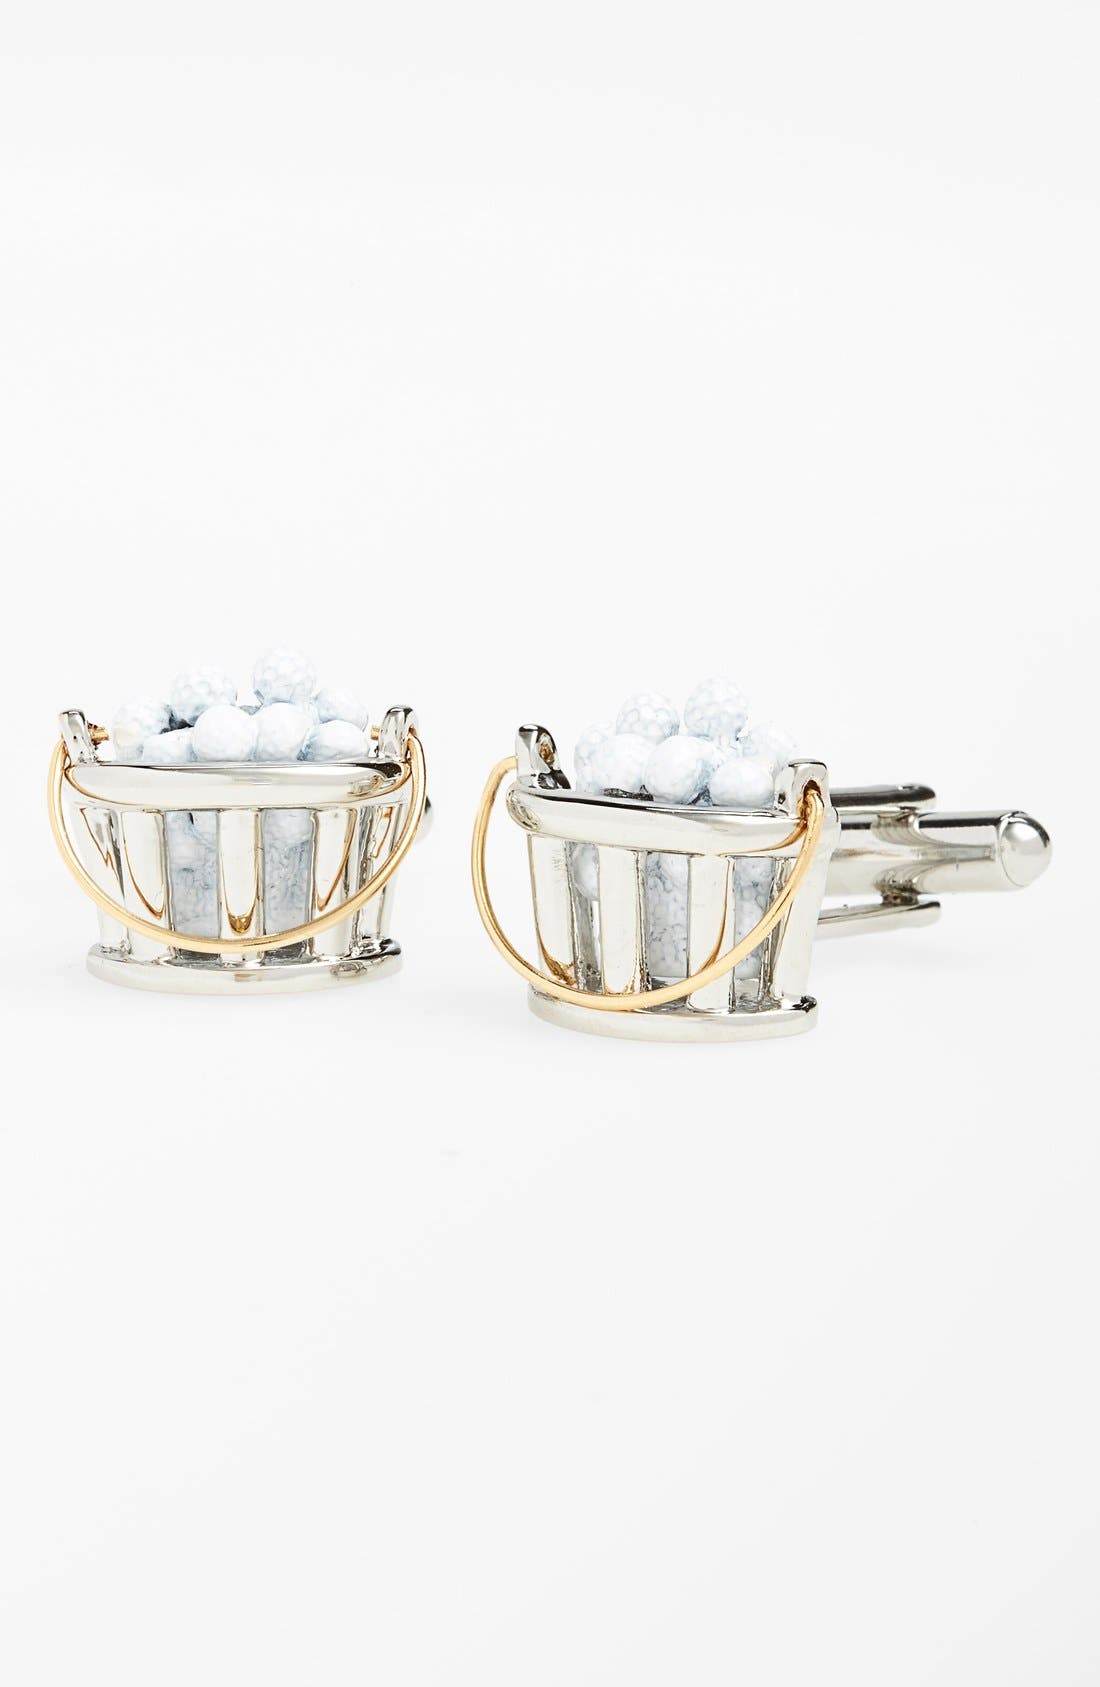 Main Image - LINK UP 'Bucket of Balls' Cuff Links